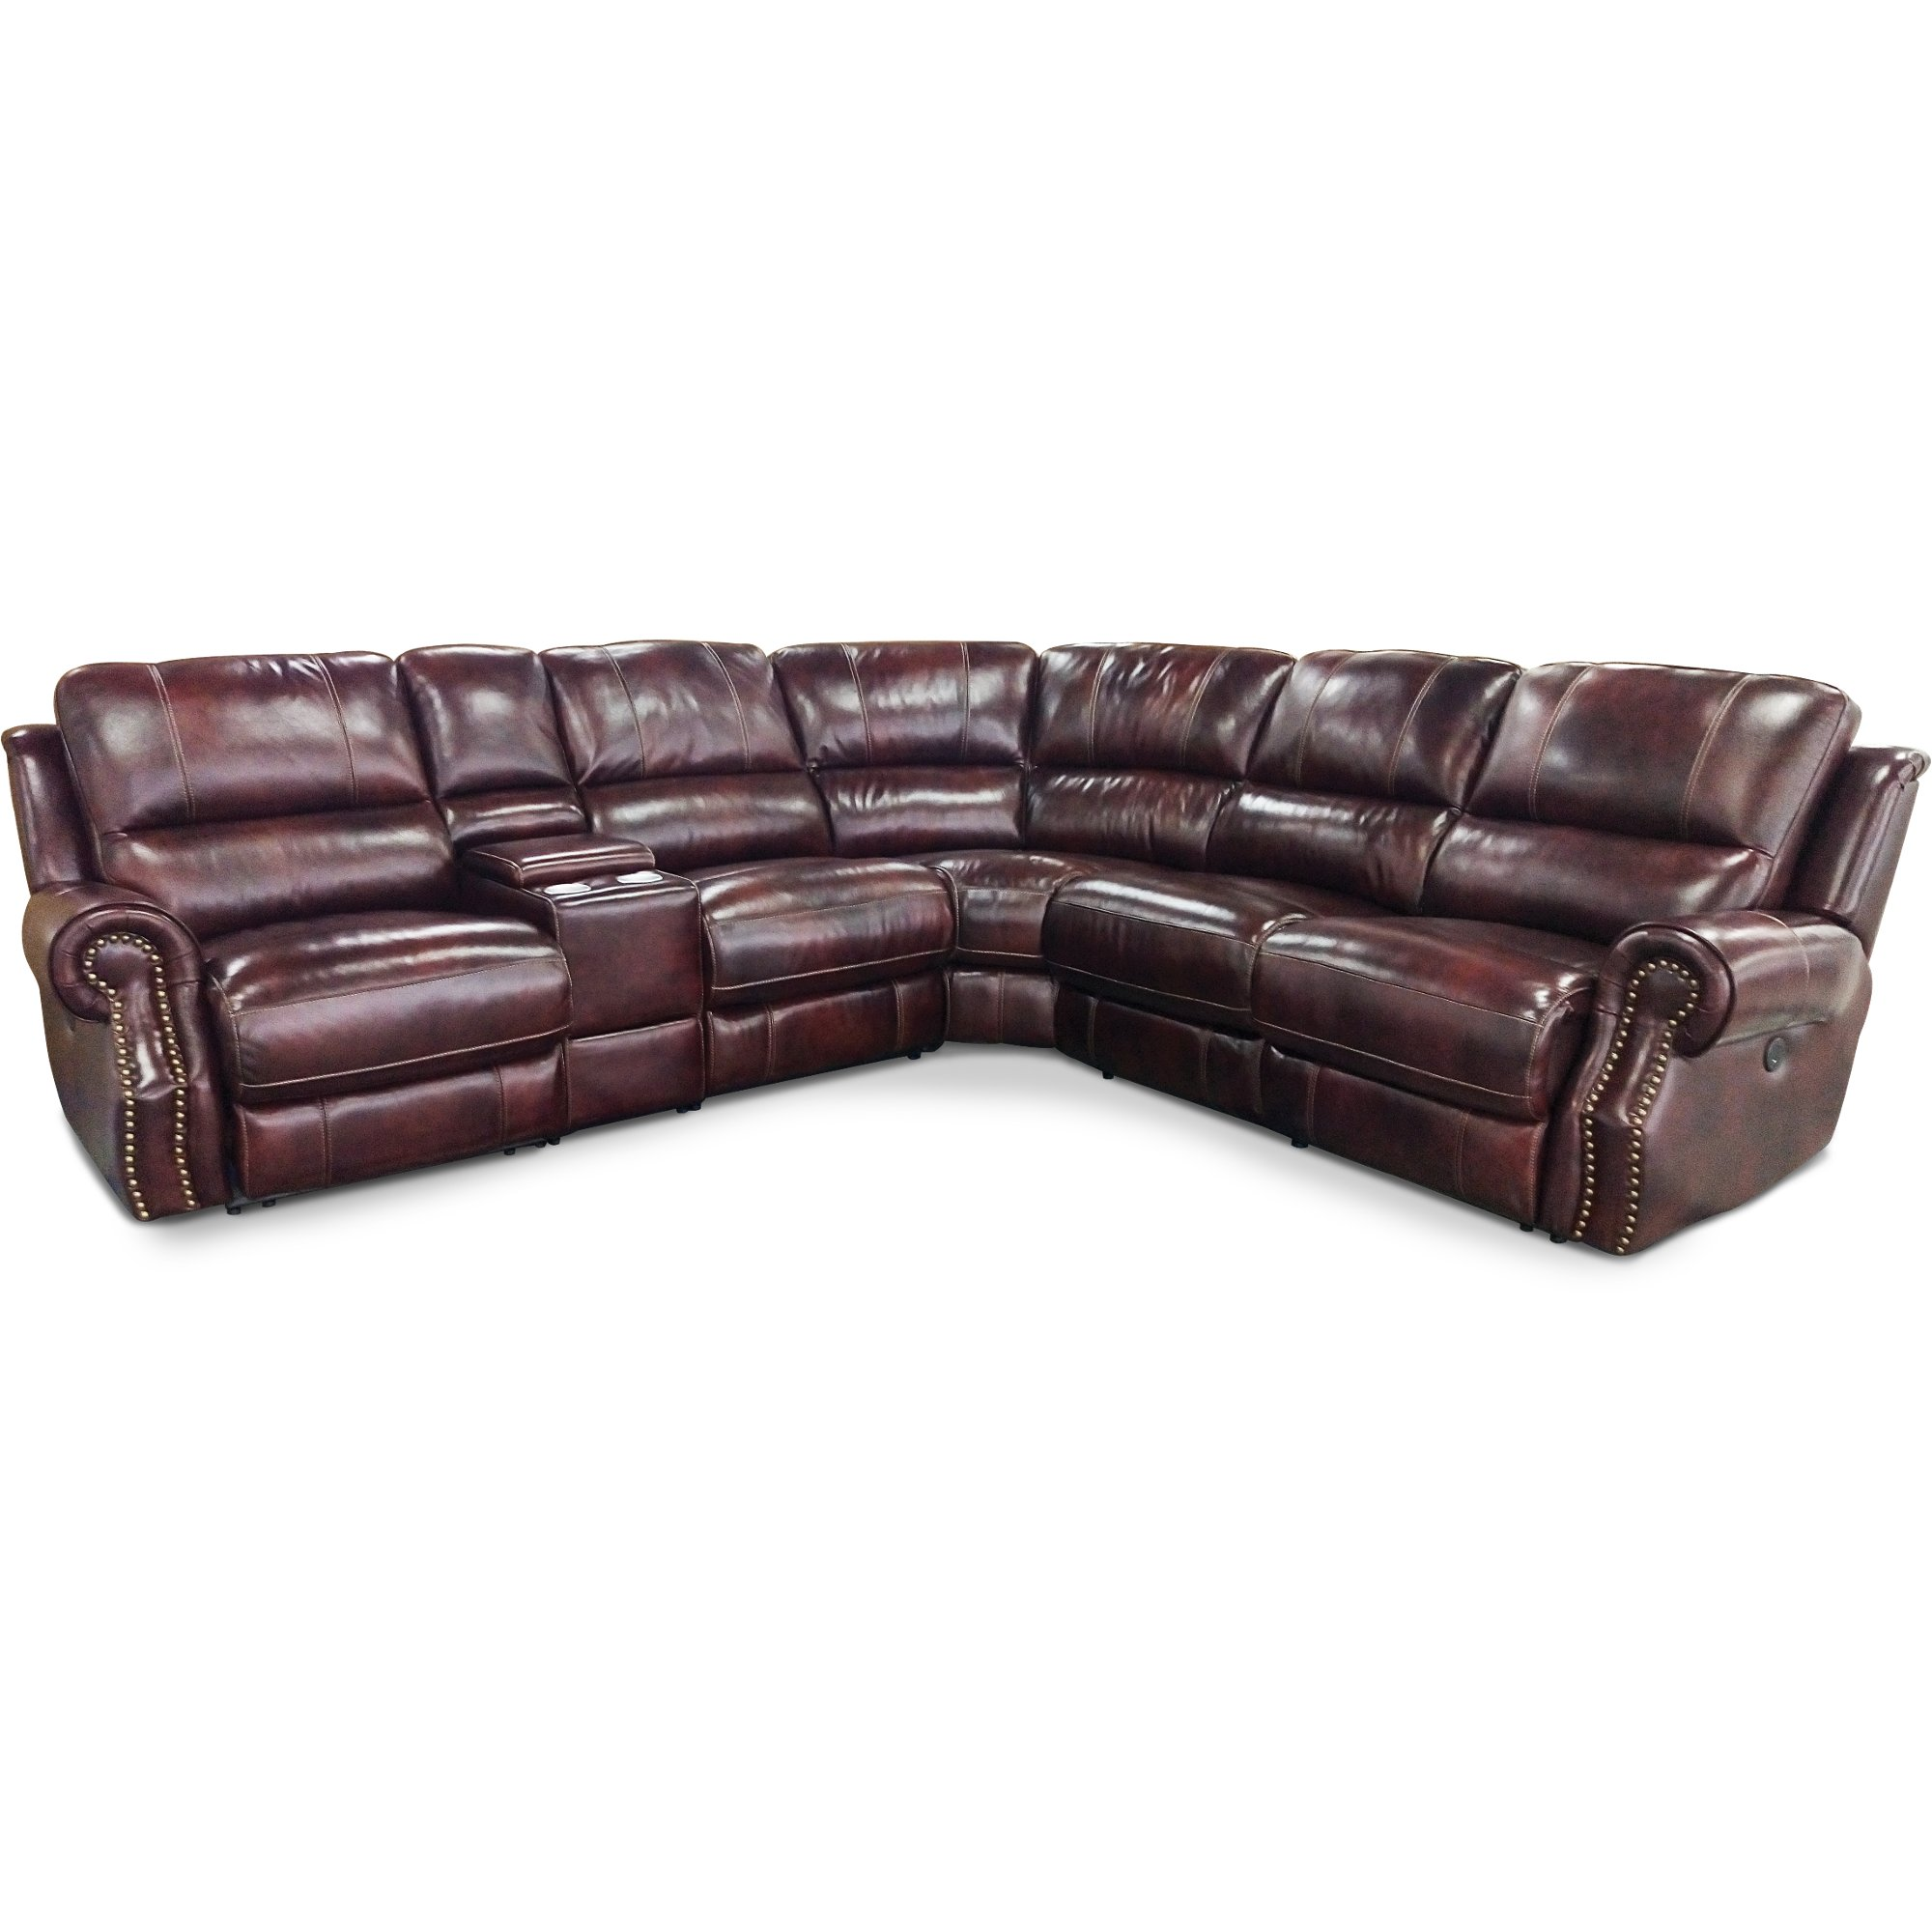 Auburn 6 Piece Reclining Sectional Sofa Nailhead